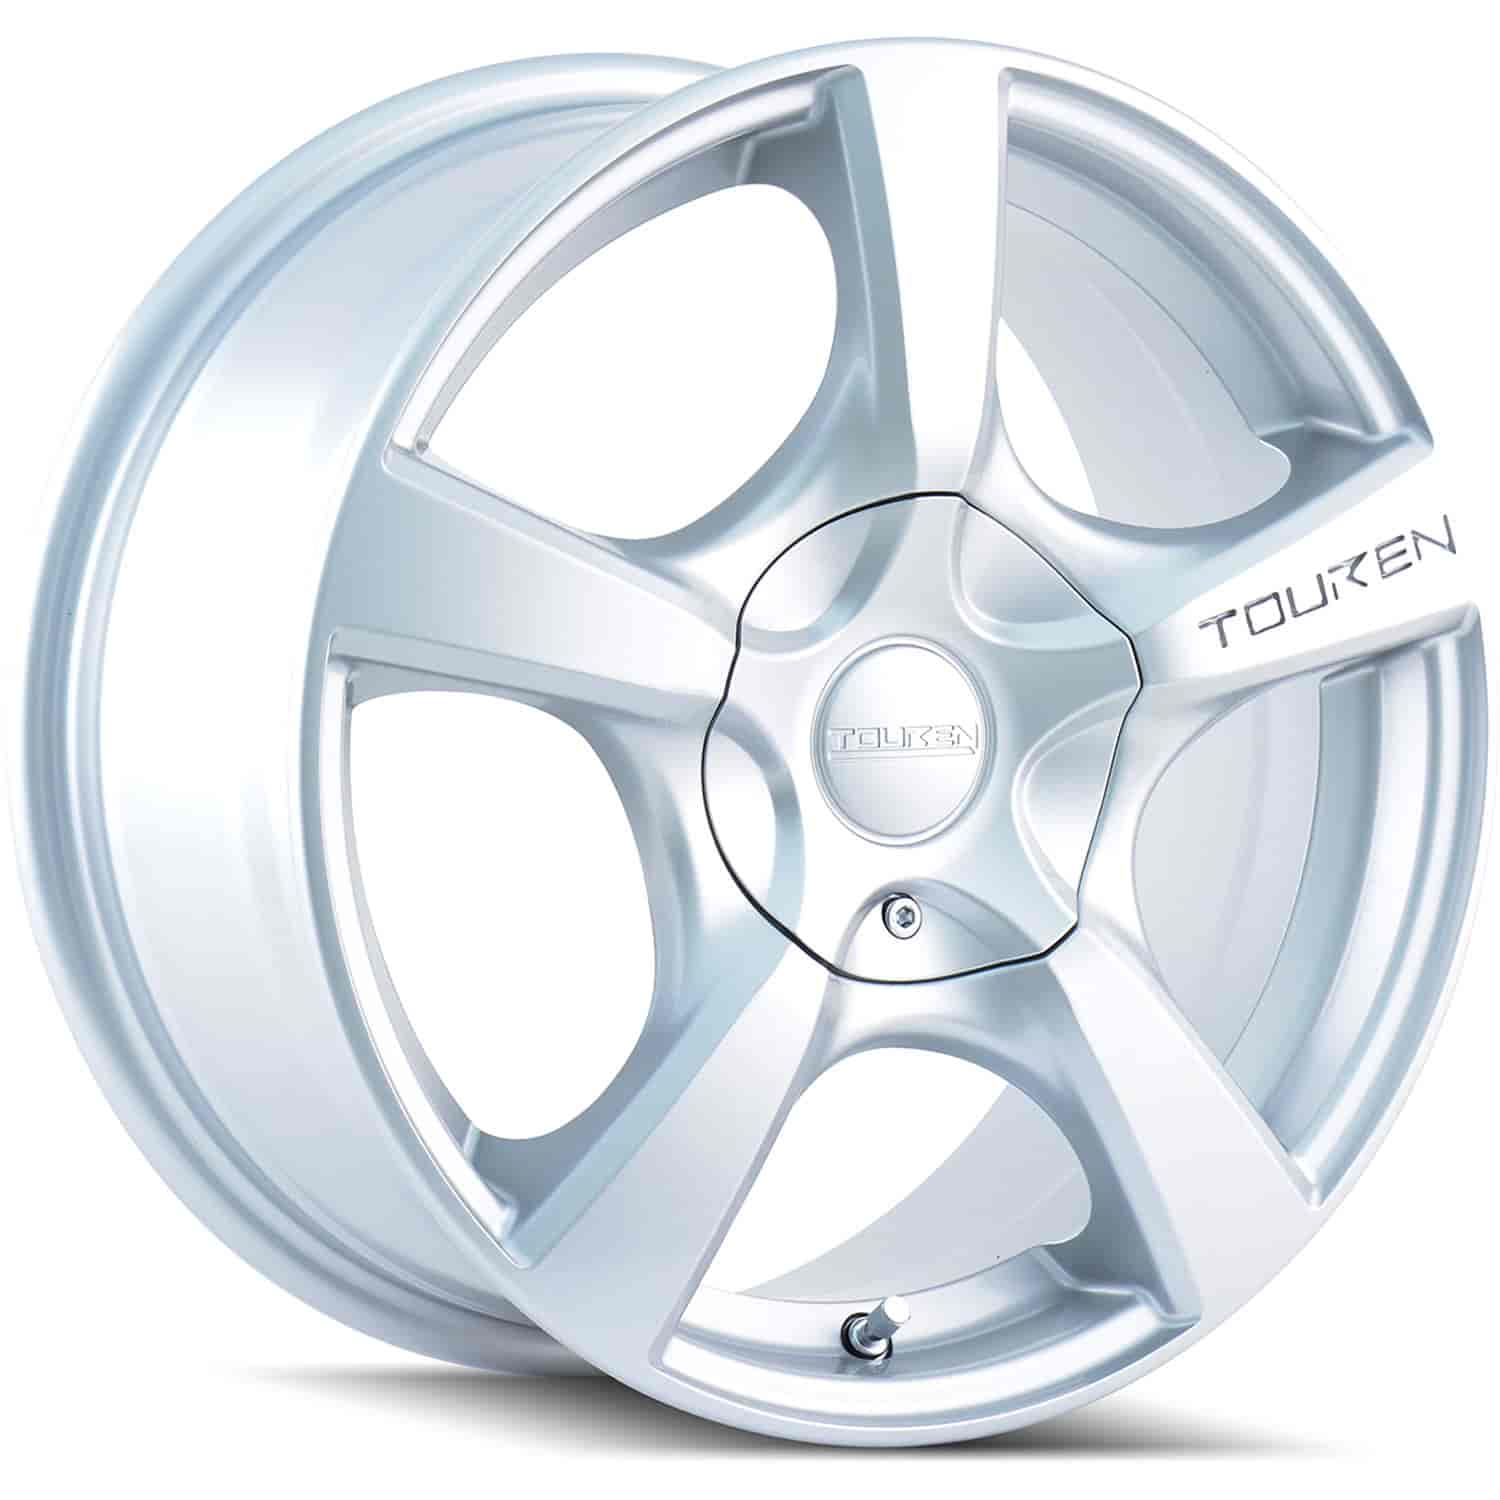 The Wheel Group 3190-7714S